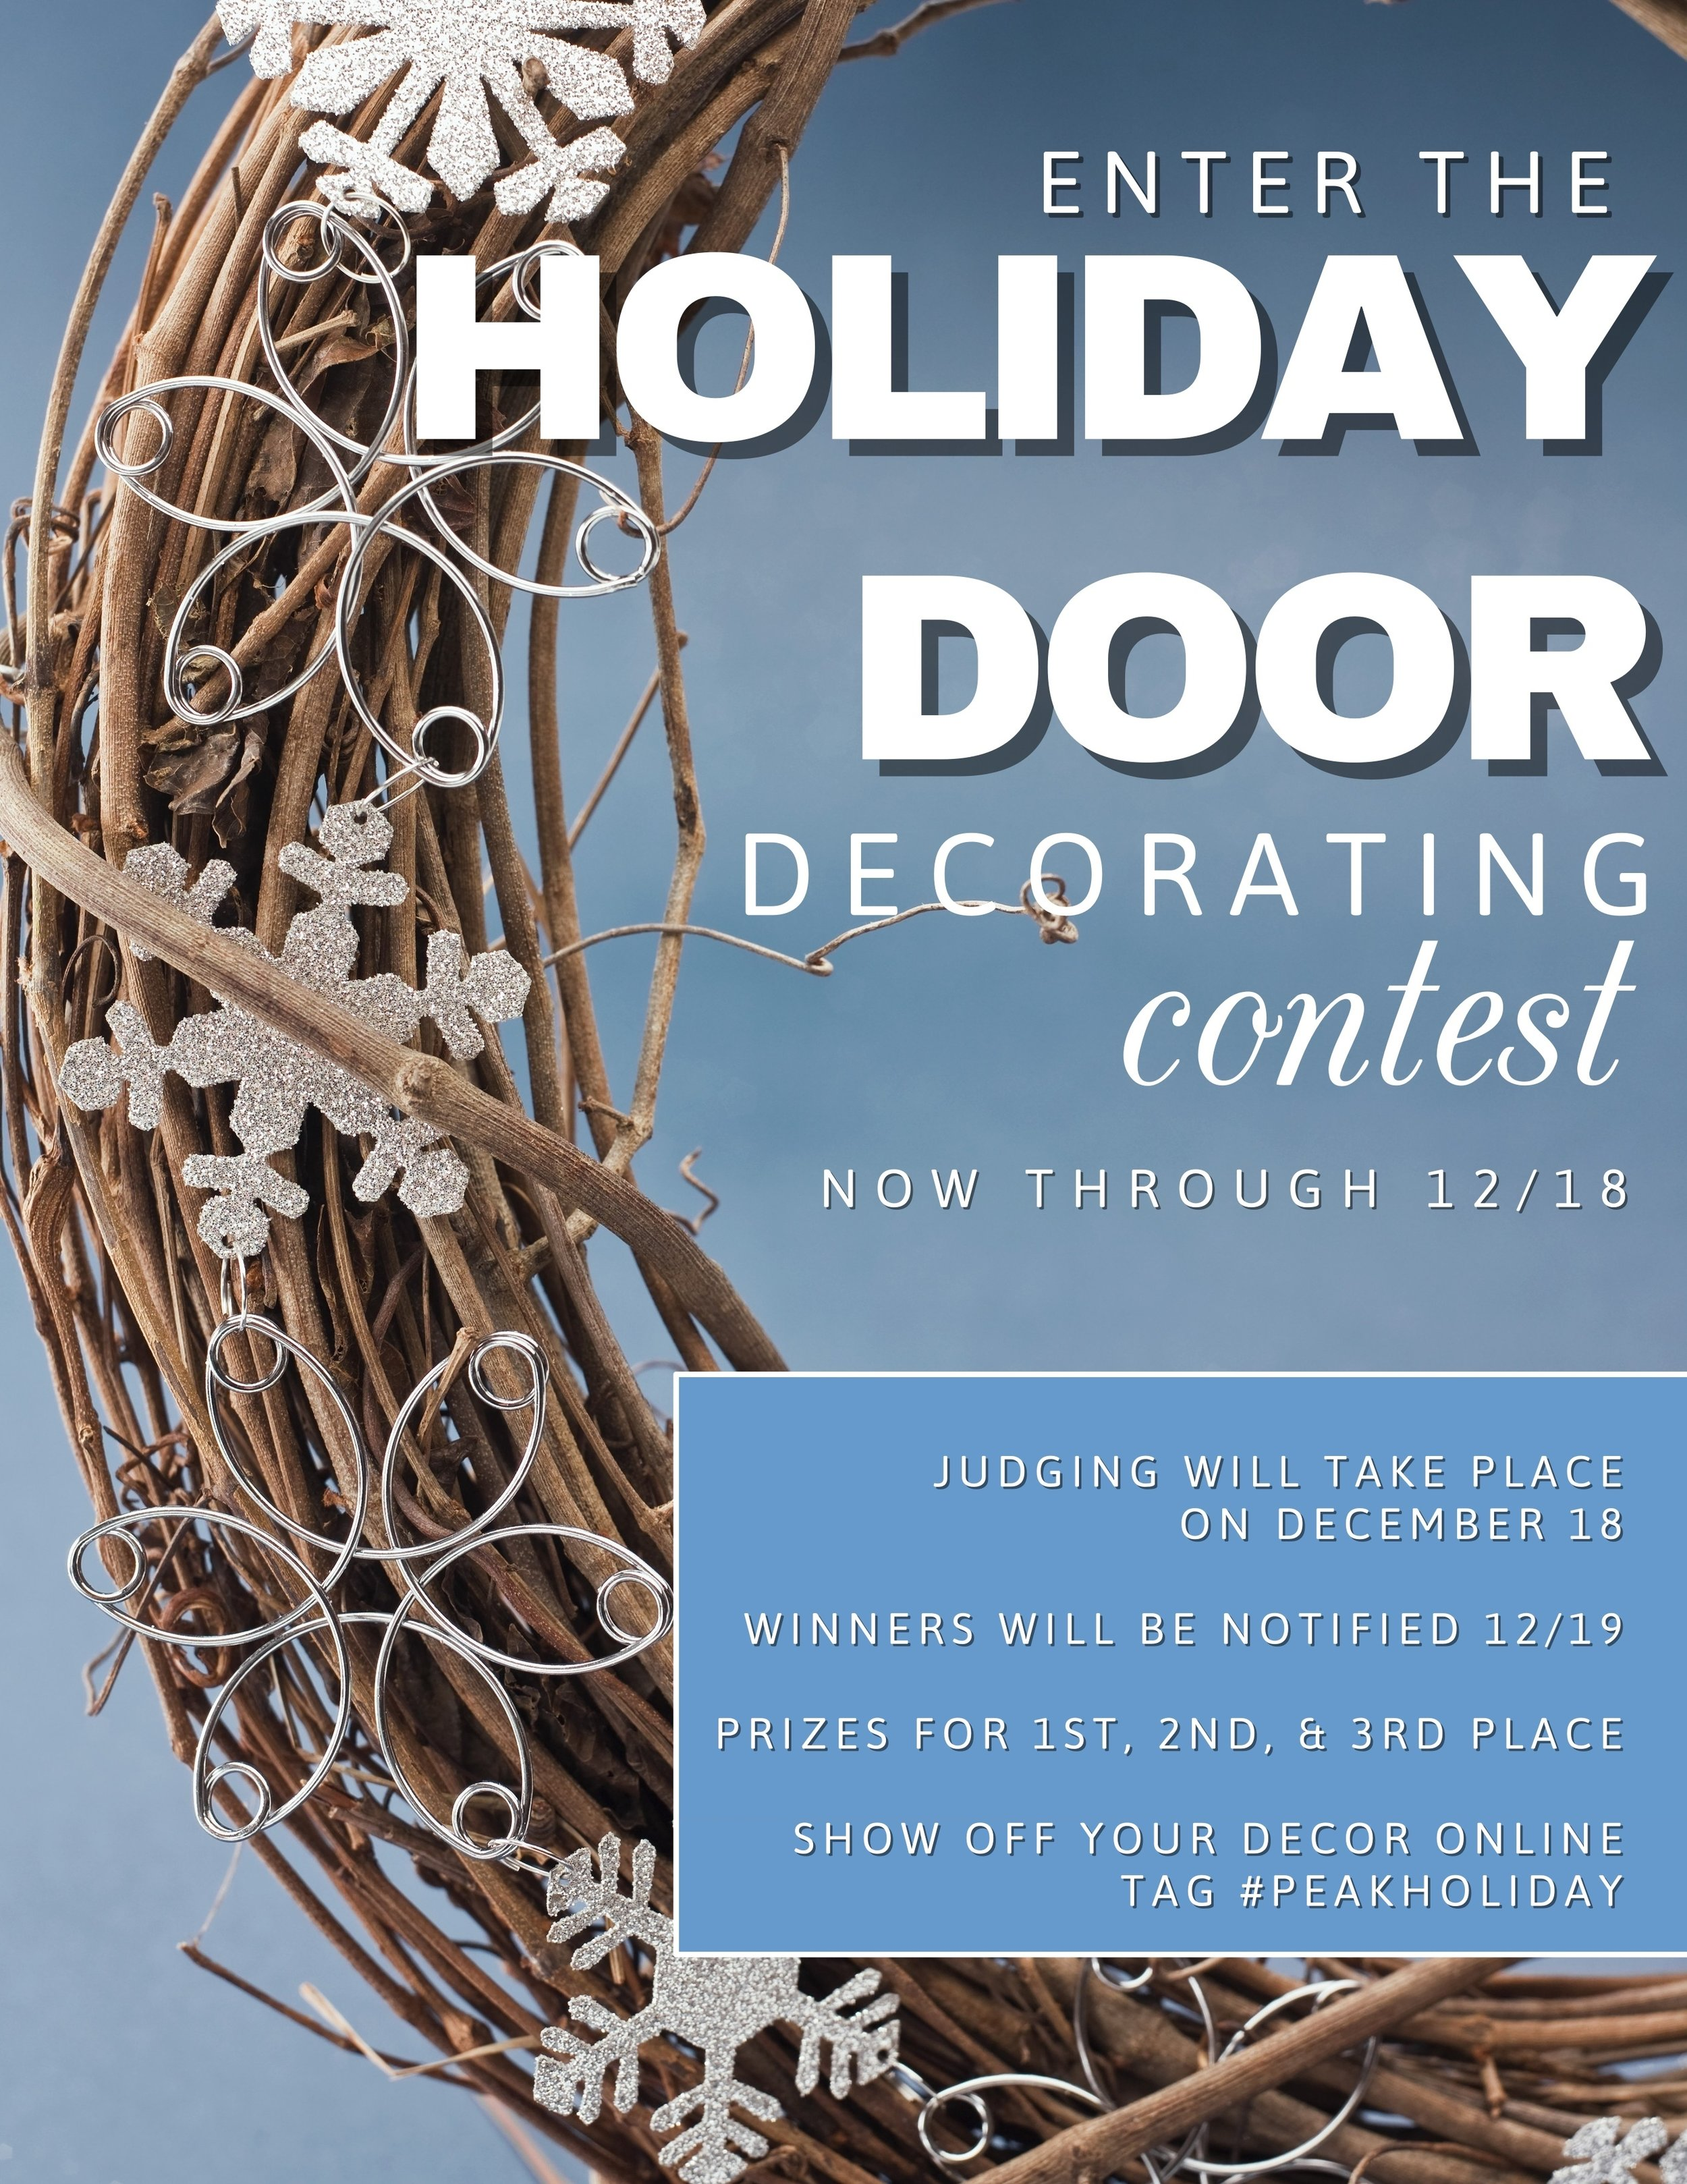 Door Decorating Contest at Tuscany Woods Apartments